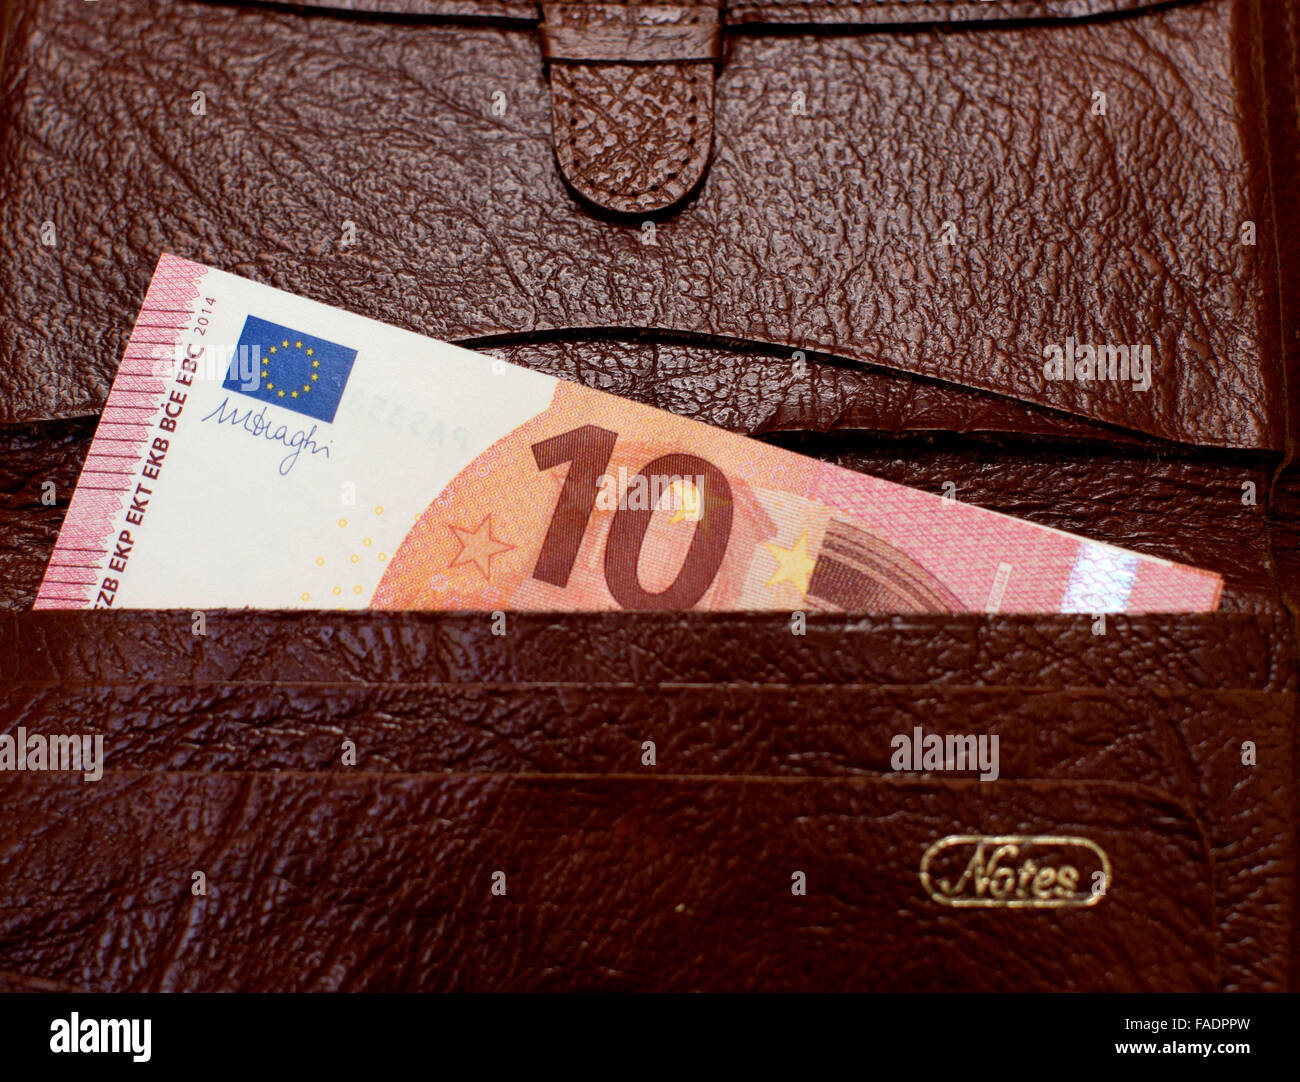 10 Euros banknote in leather wallet, London - Stock Image